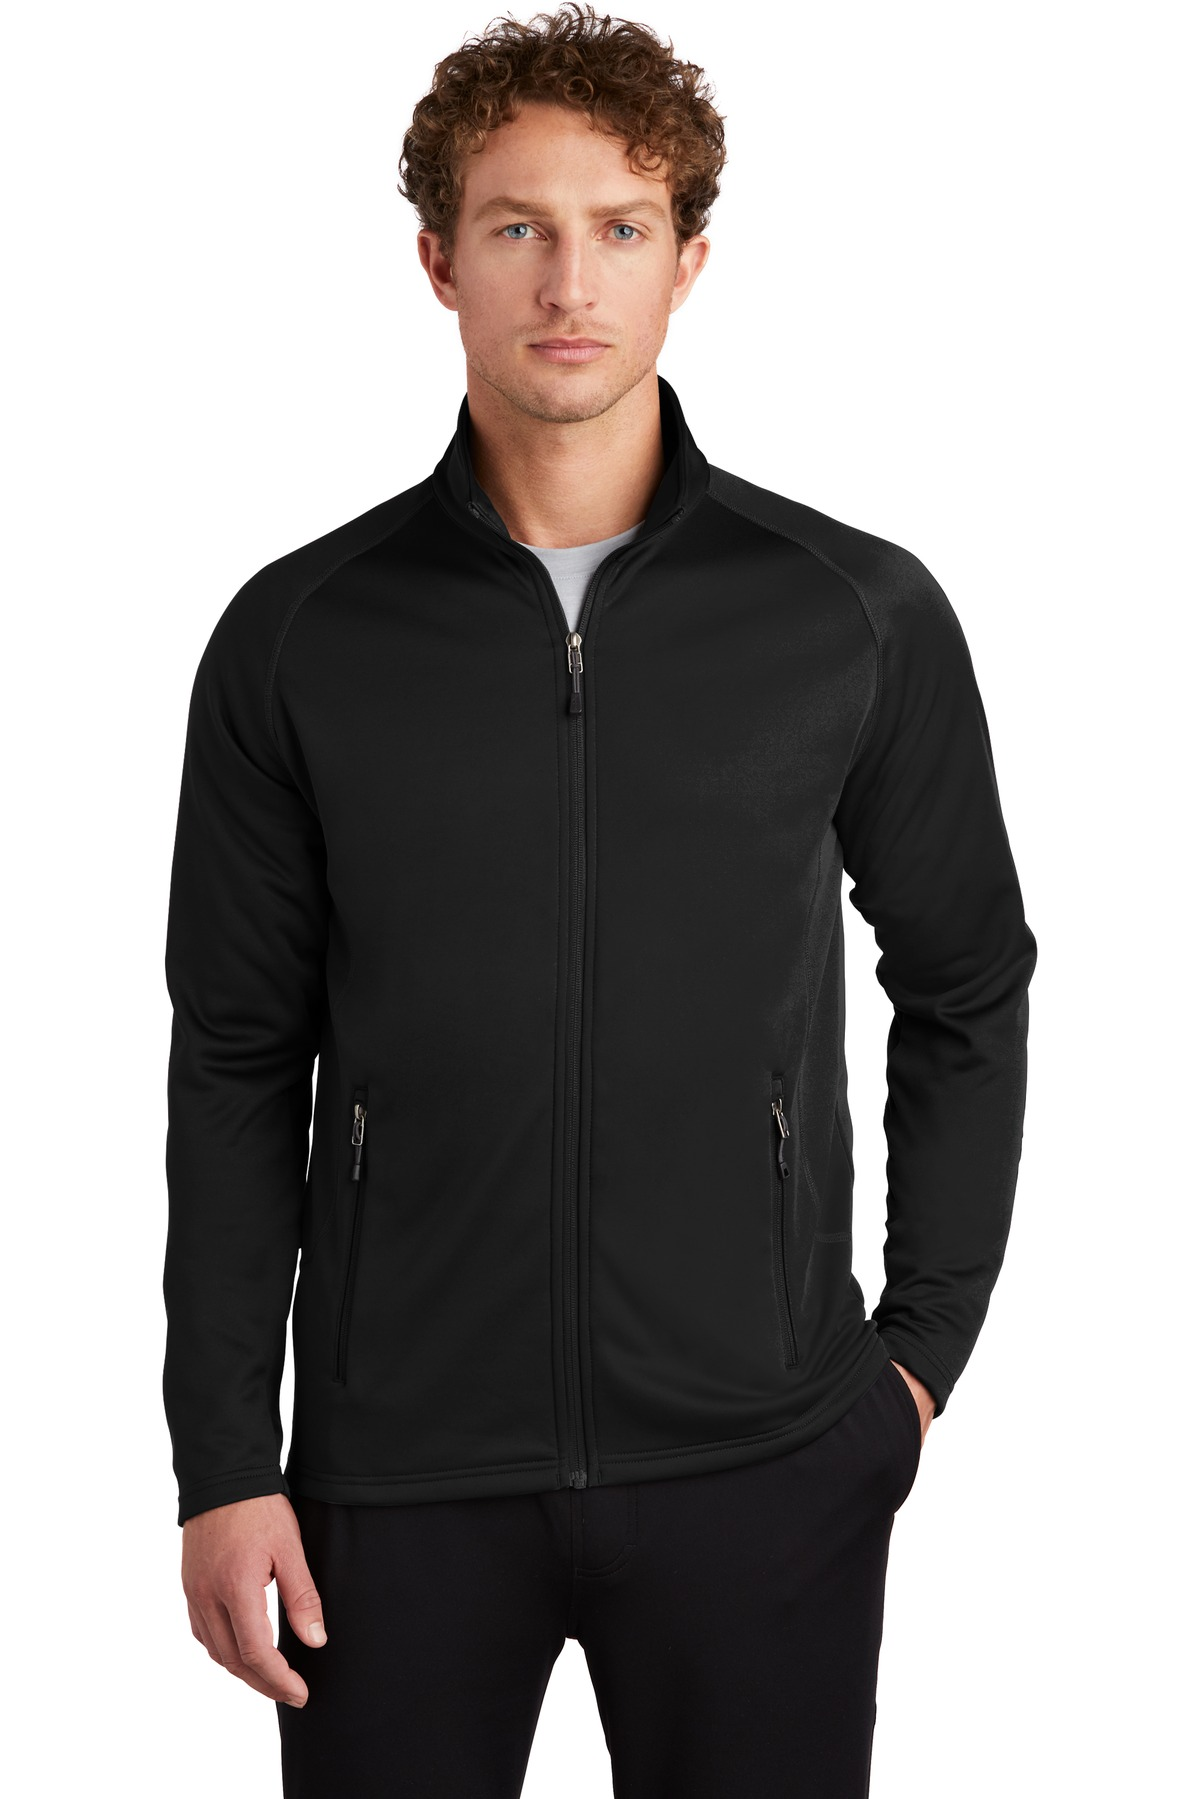 Eddie Bauer  ®  Smooth Fleece Base Layer Full-Zip. EB246 - Black